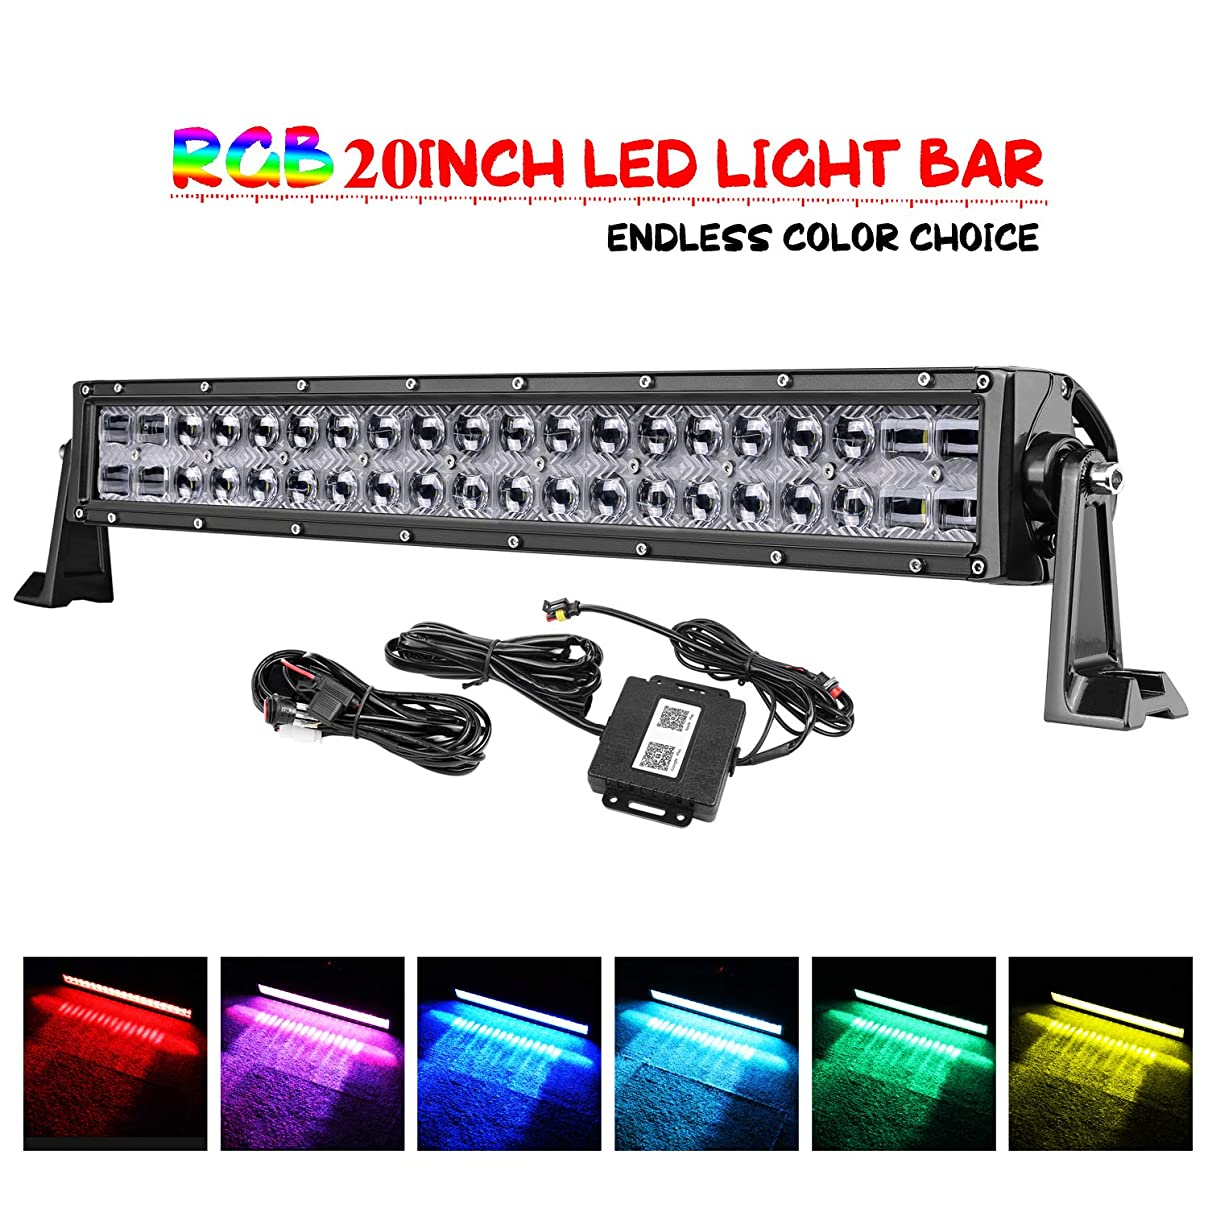 LED Light Bar, OFFROADTOWN 20'' 120W RGB Cree Led Work Light Bar 5D Off Road Color Changing Driving Lights Flood Spot Combo Beam Light Bar Bluetooth Lights with Wiring Harness Off road Truck Jeep ATV rj48727800415